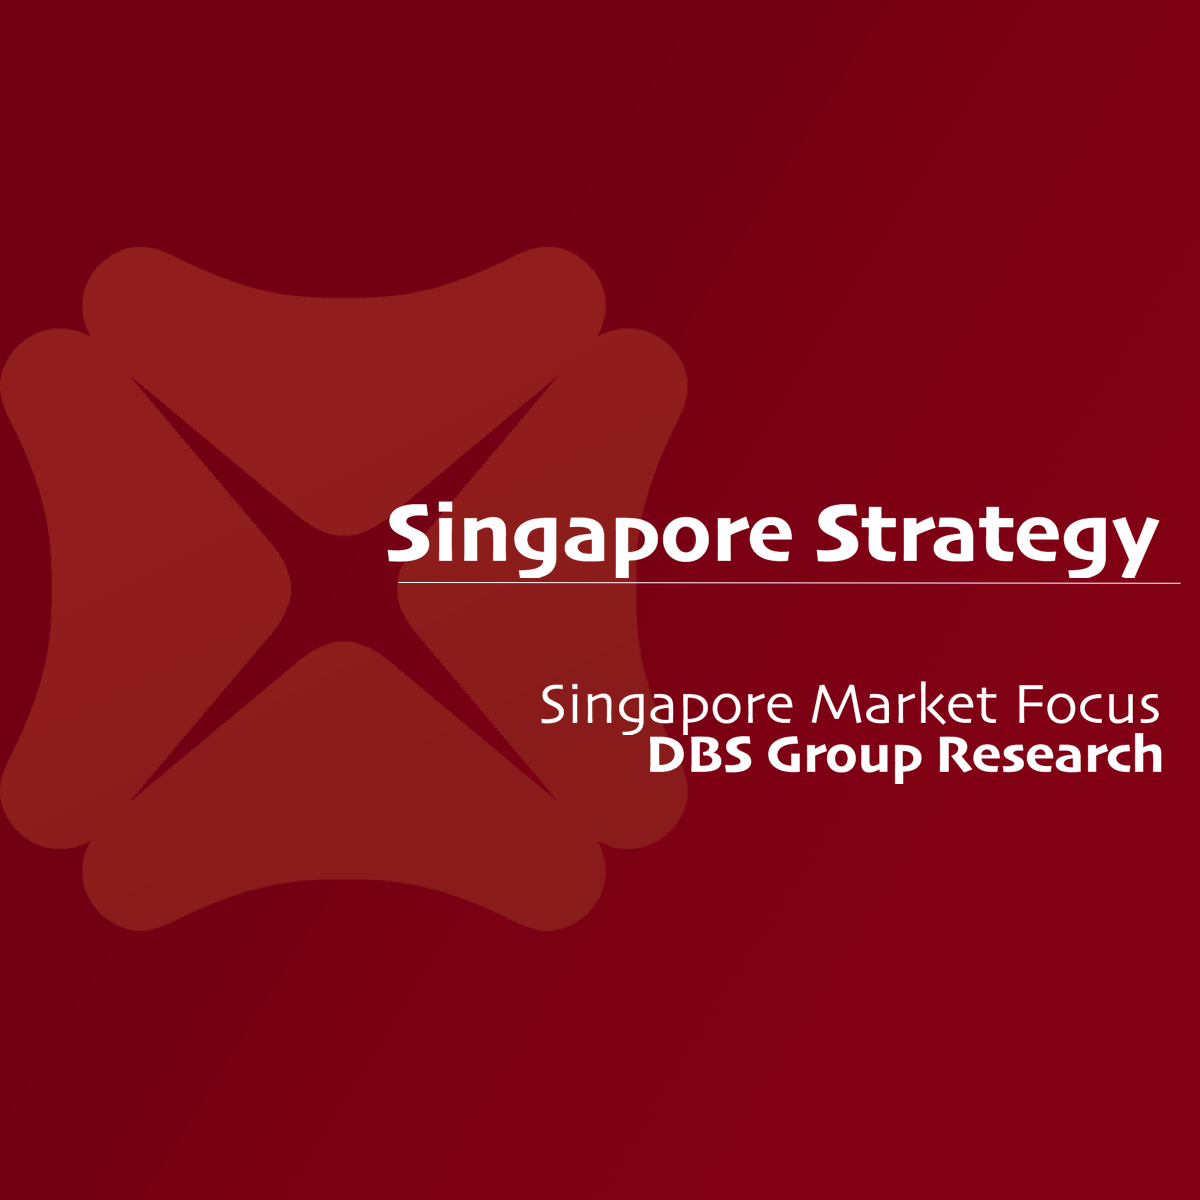 Singapore Stock Monthly Strategy (June 2018) - DBS Vickers 2018-06-04: Five Sti Component Stocks To Accumulate In June